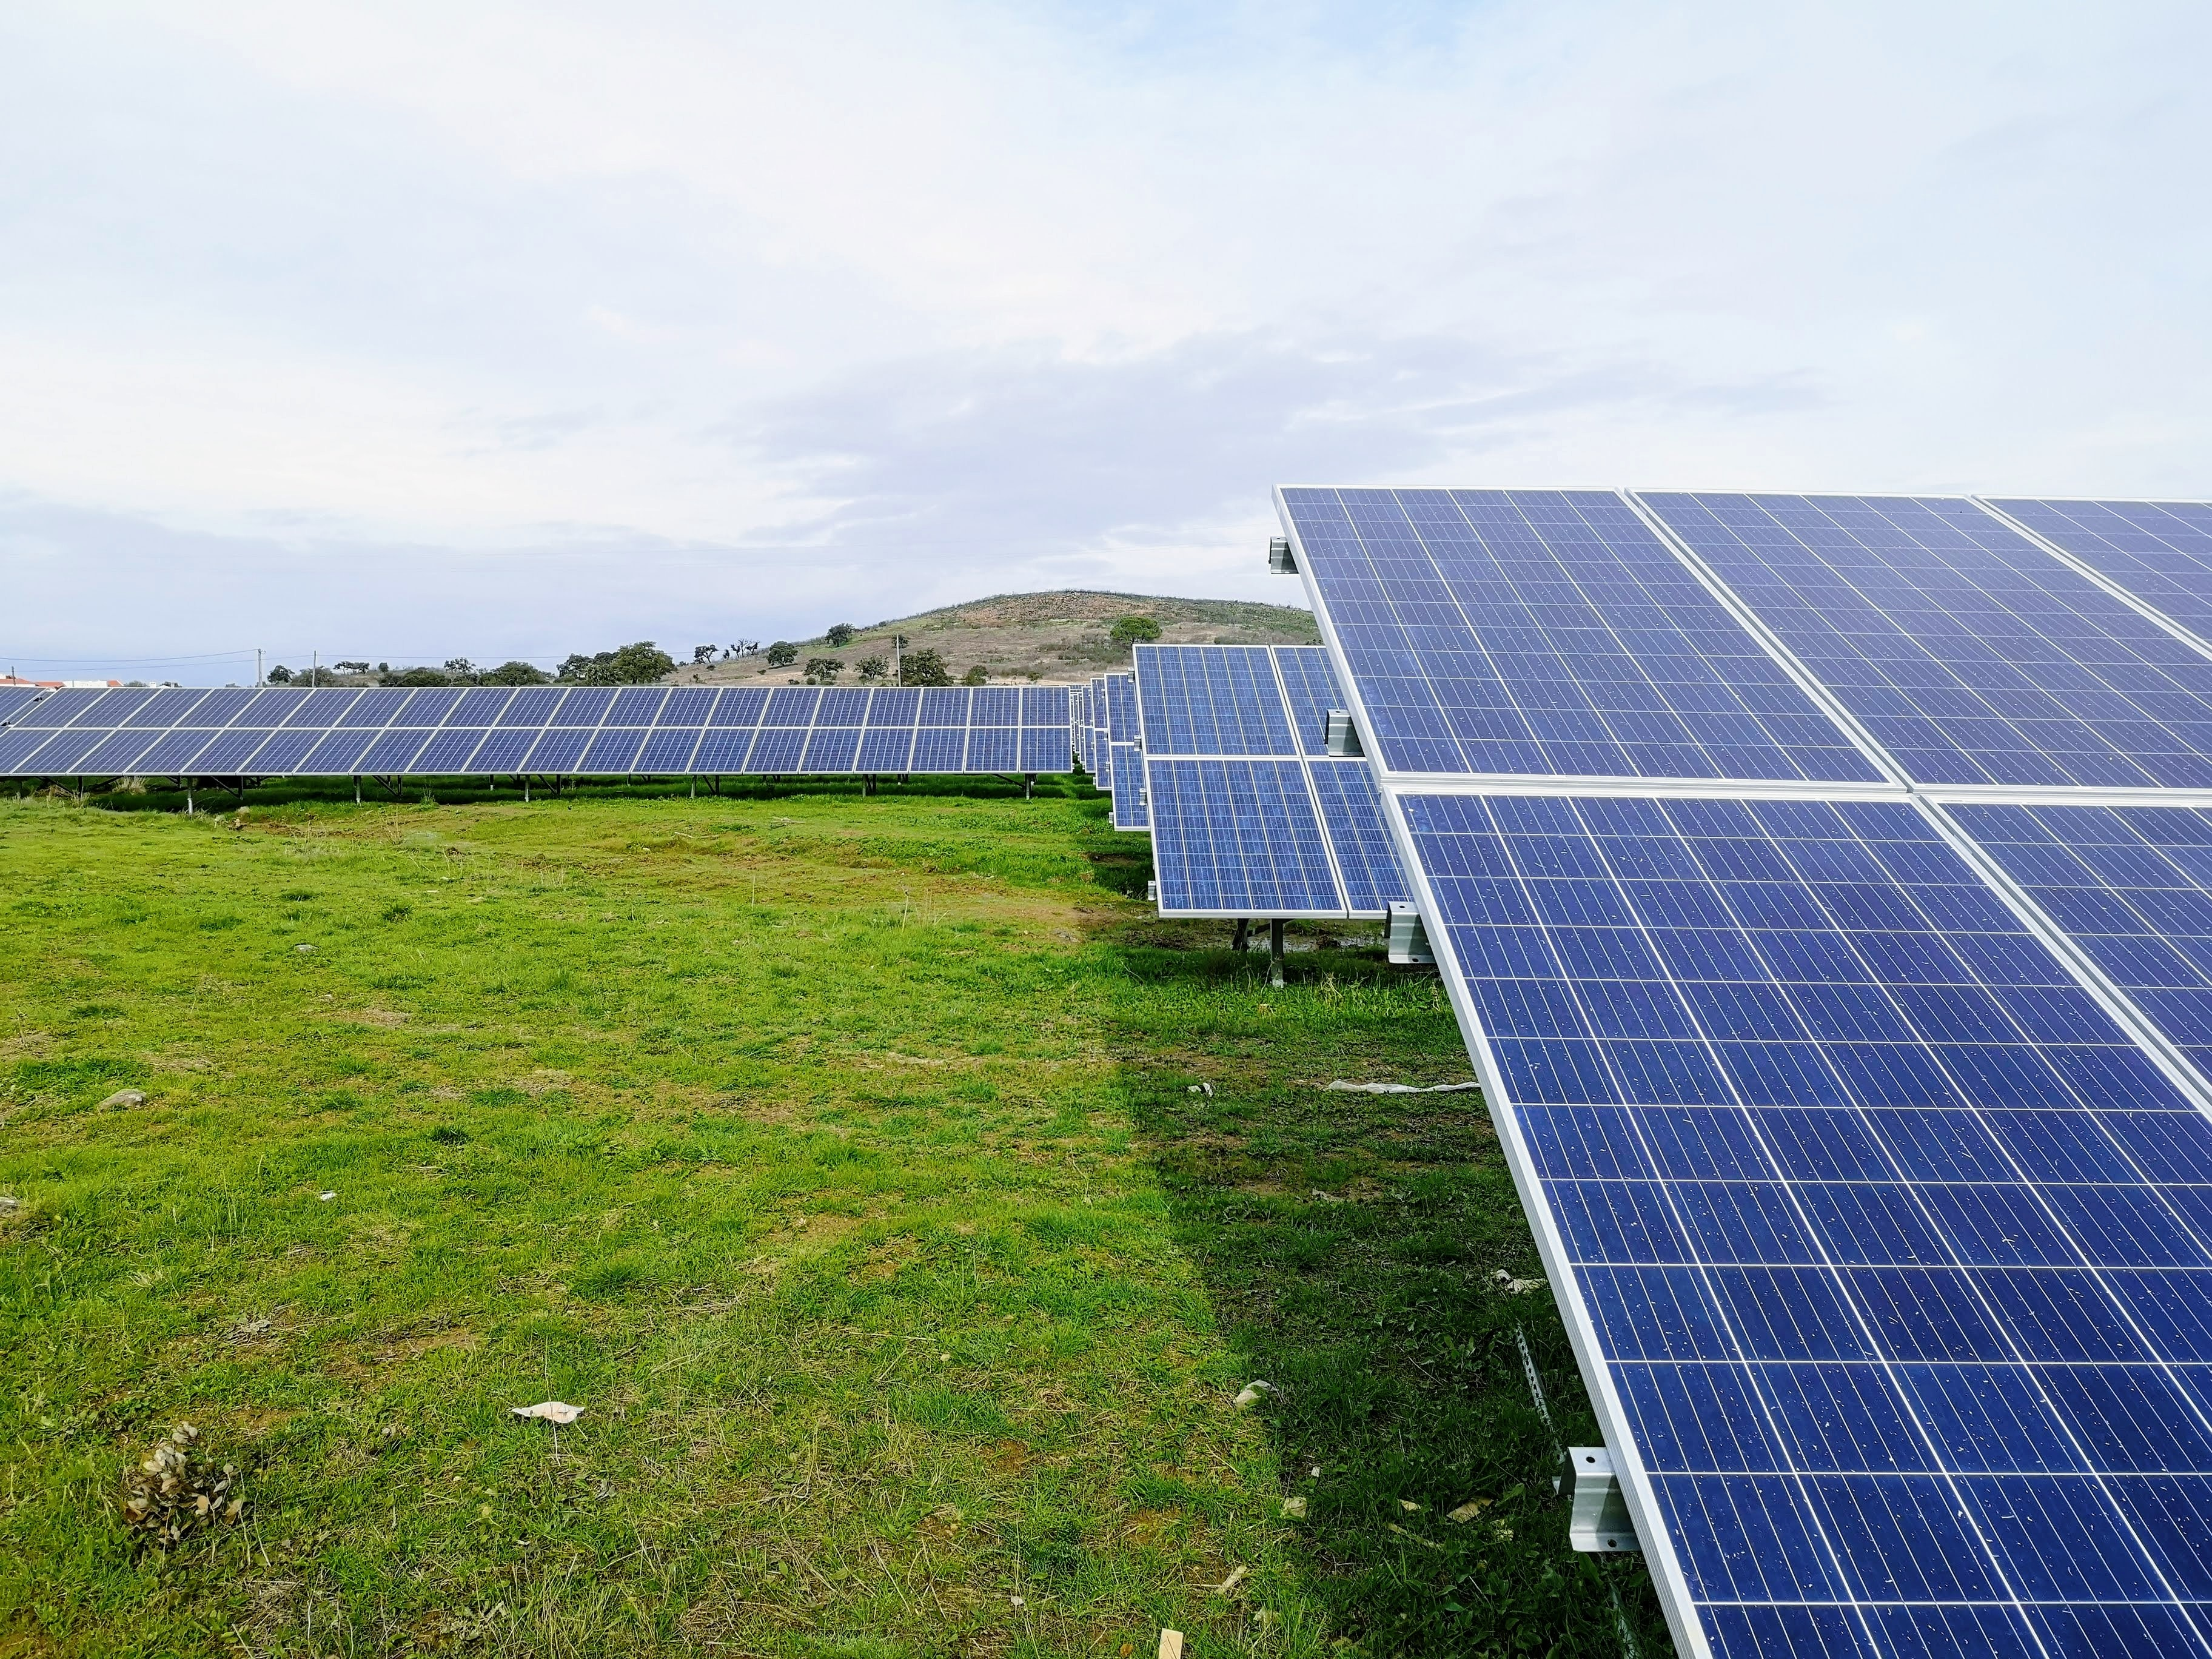 Heeding the call for a green recovery